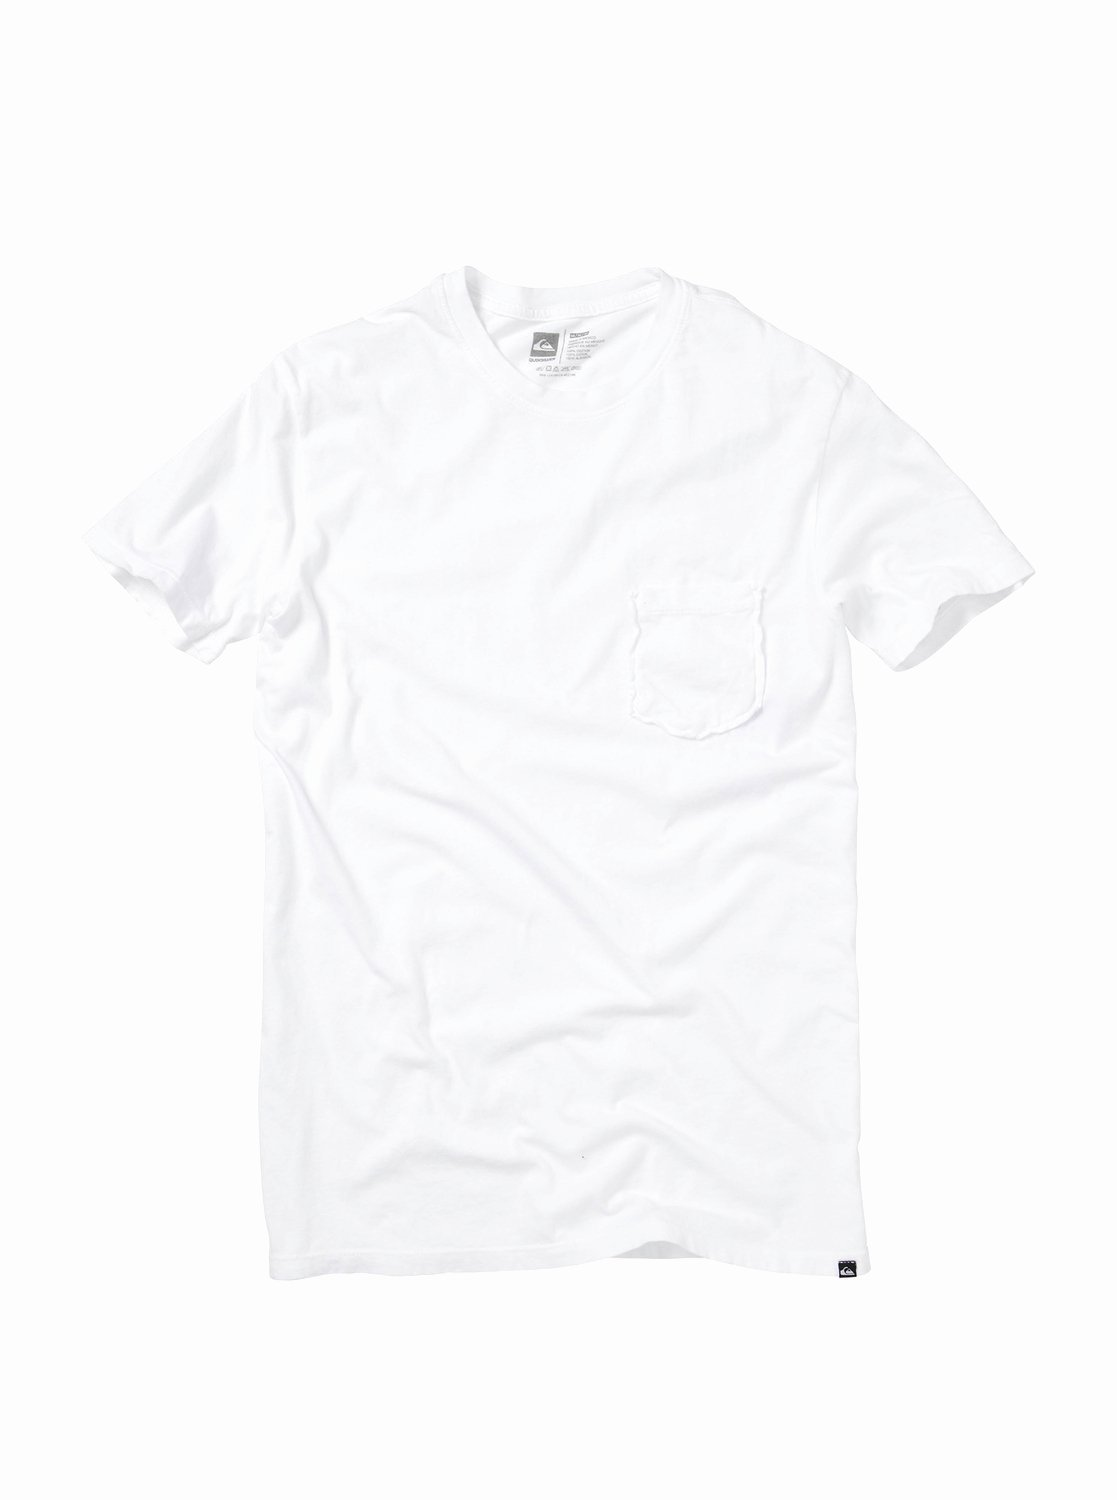 Pocket Shirt Template Lovely Blank Pocket Crew T Shirt Aqyzt